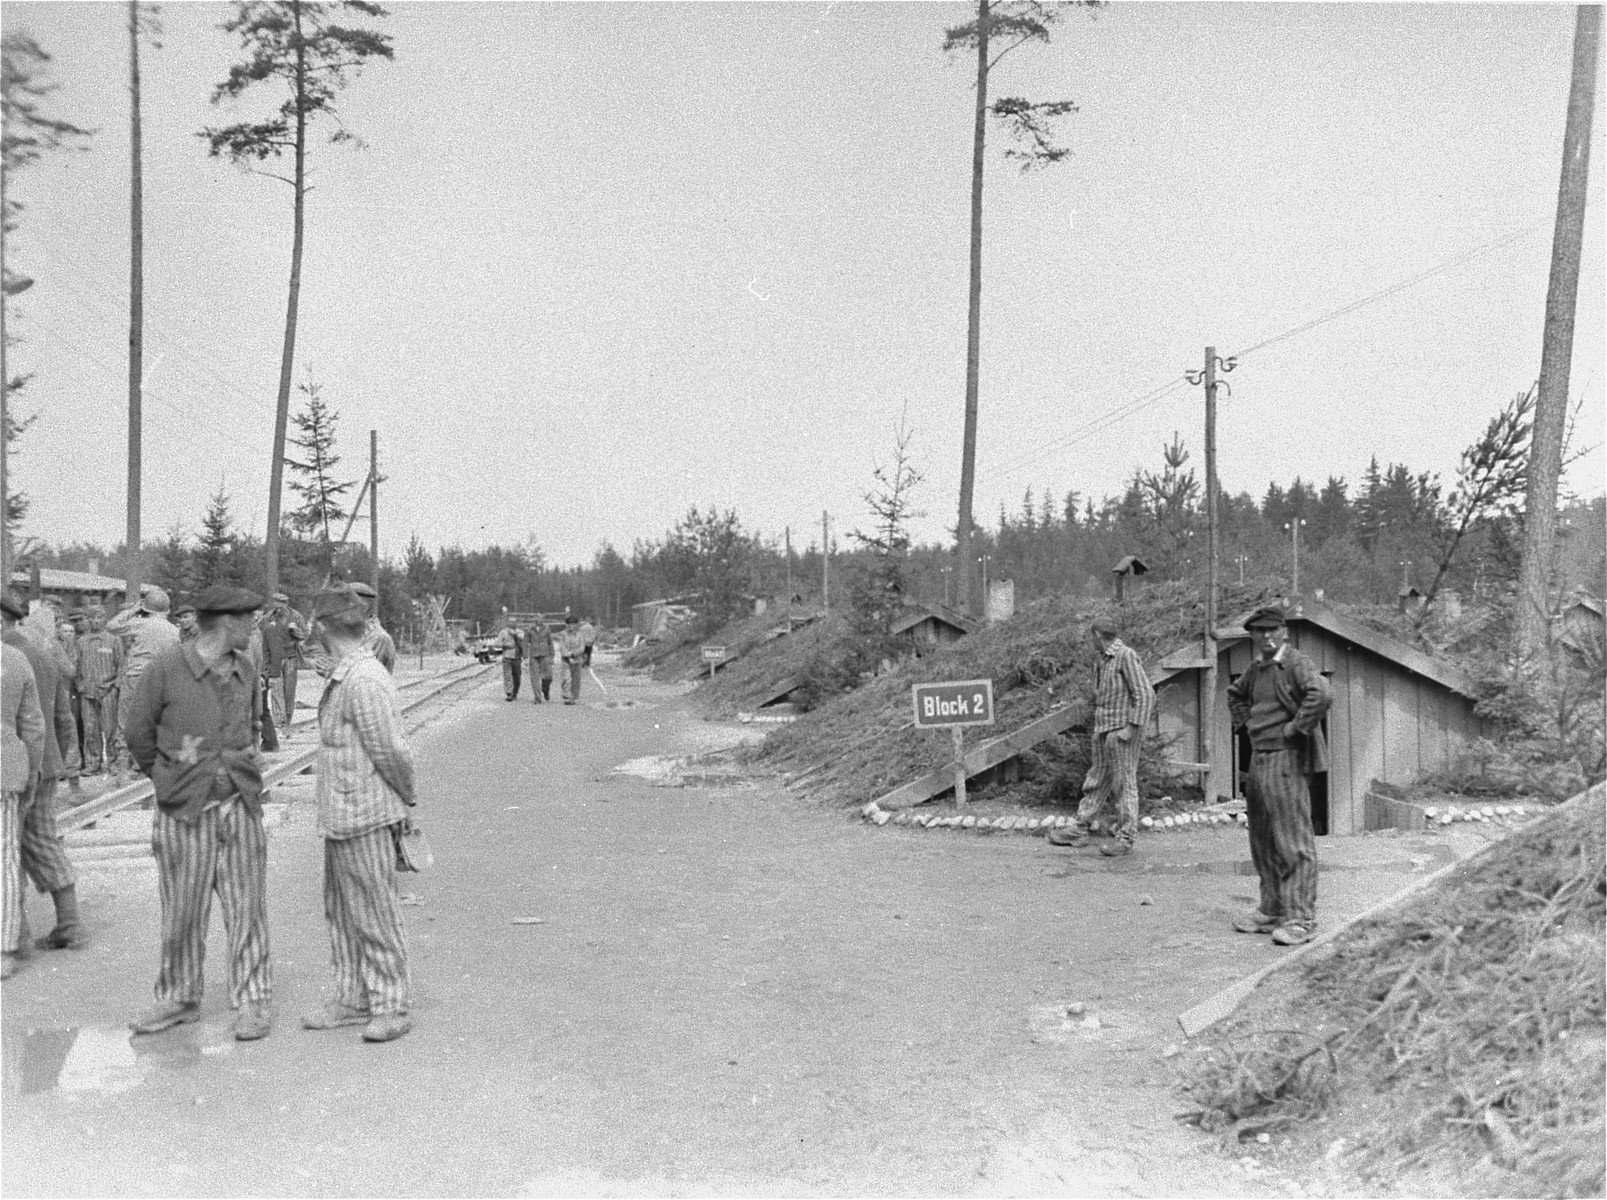 Survivors in the Ampfing concentration camp stand on a camp street outside of their barracks.